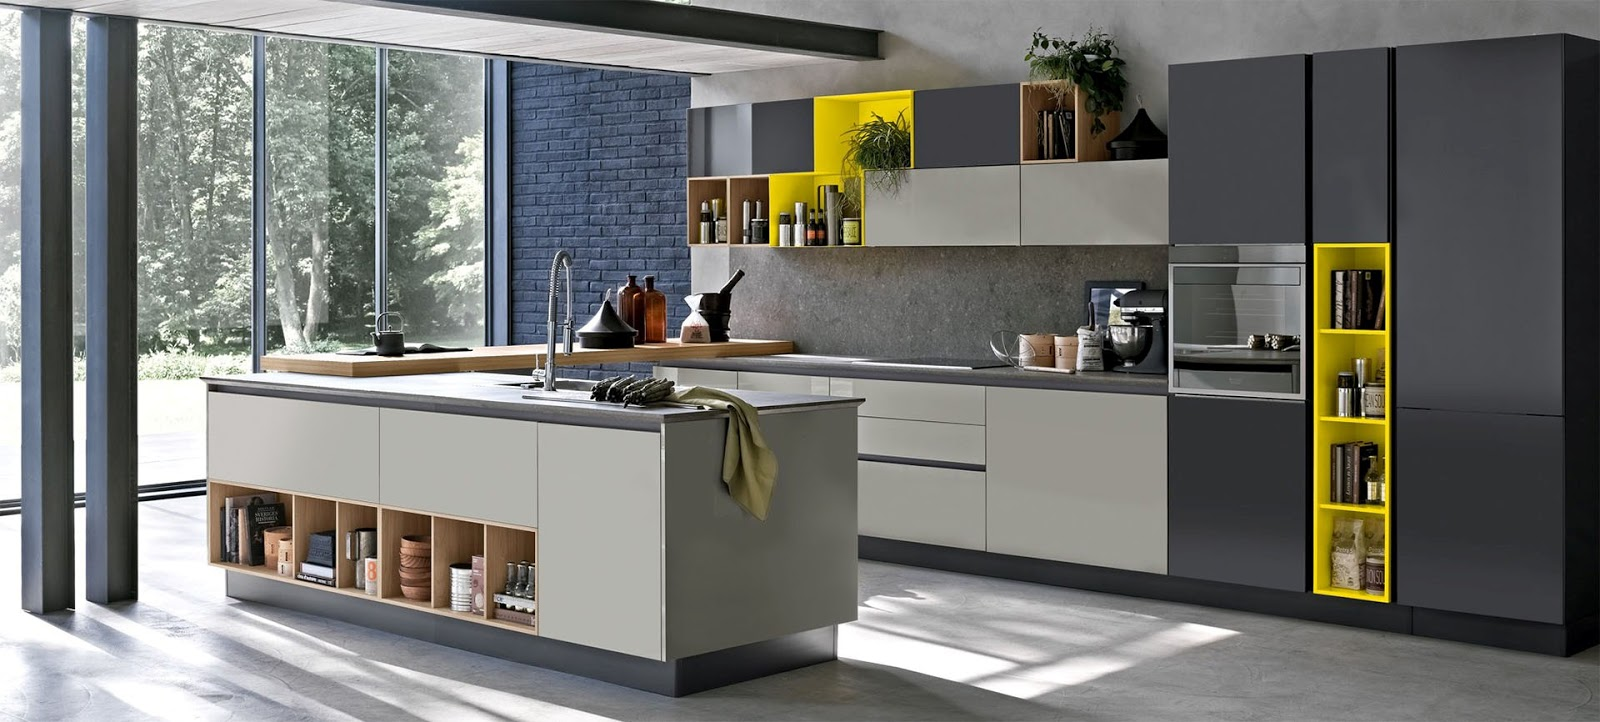 Best 50+ Small Kitchen Design Ideas